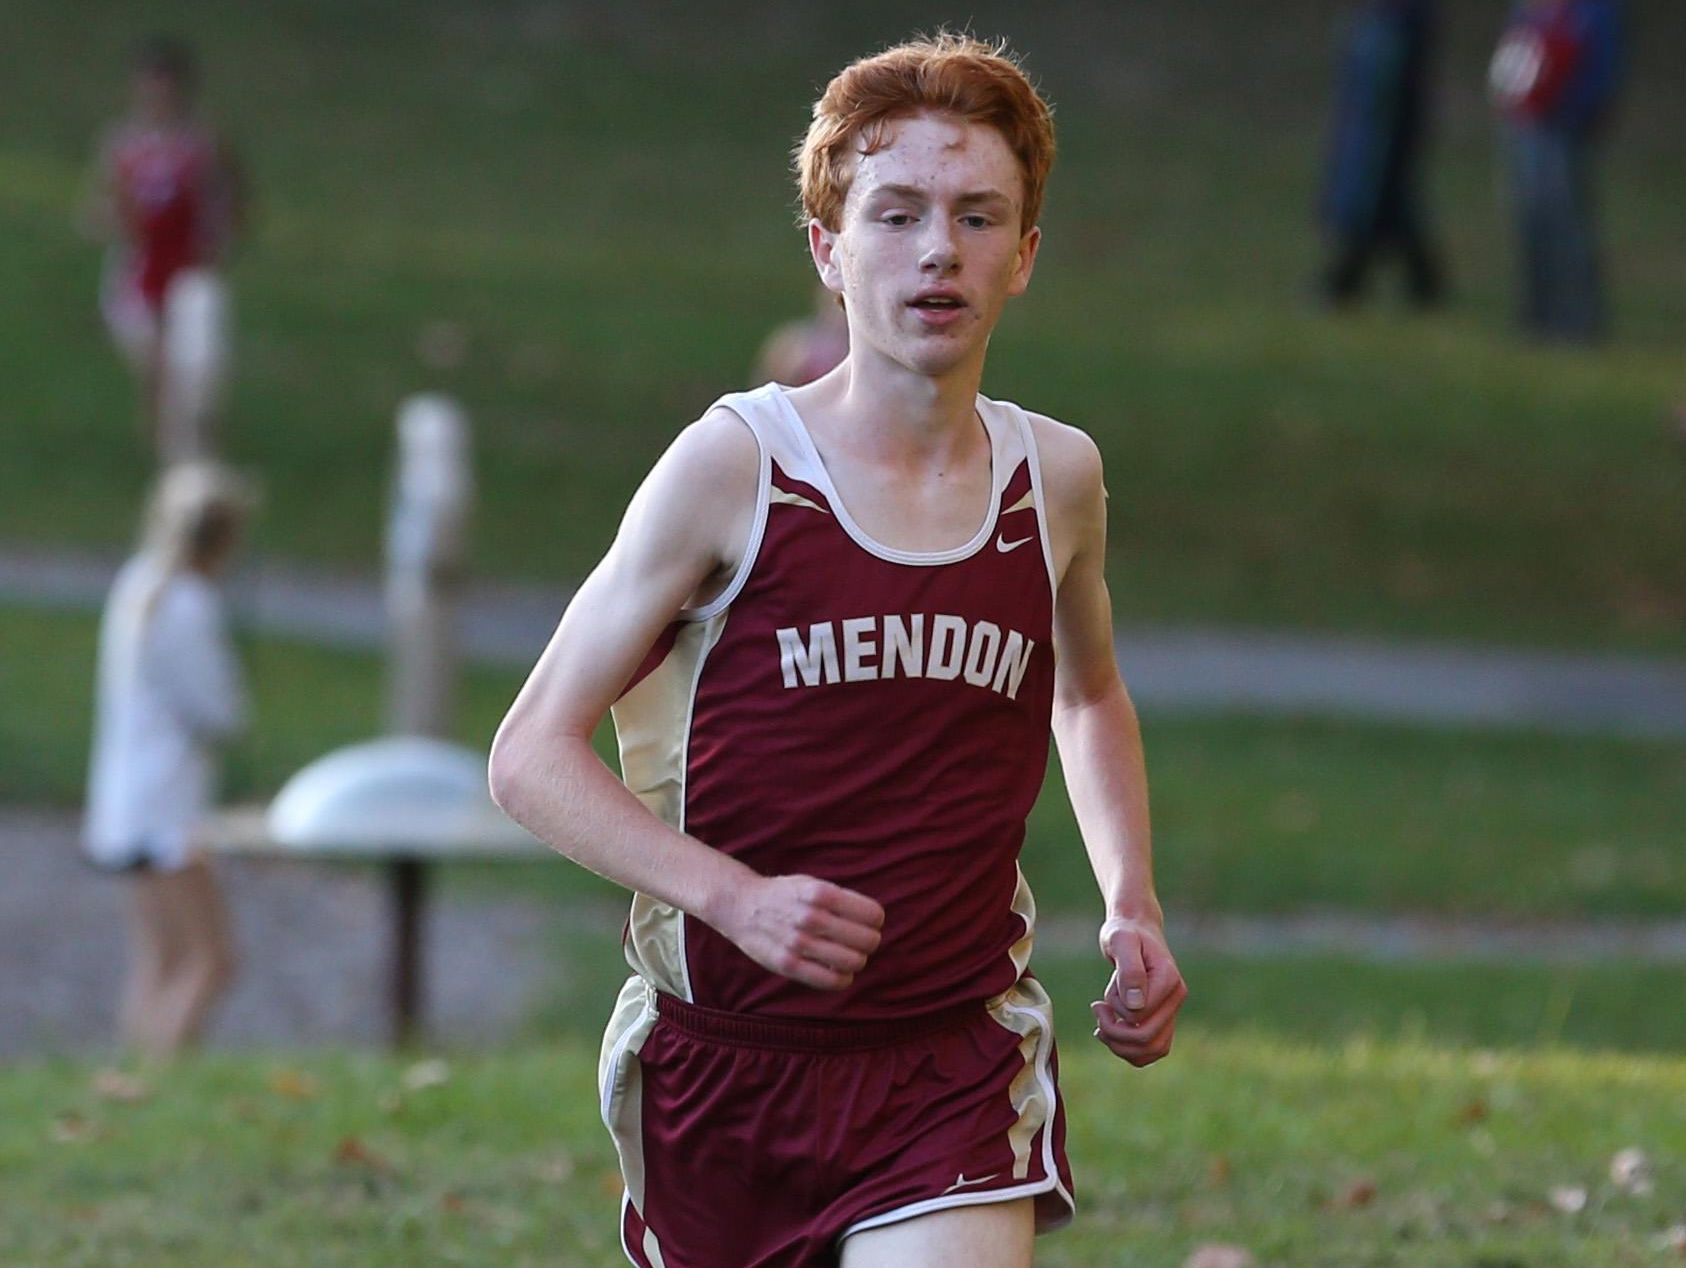 Pittsford Mendon junior Nathan Lawler is among the top three boys cross country runners in the state, according to TullyRunners.com.